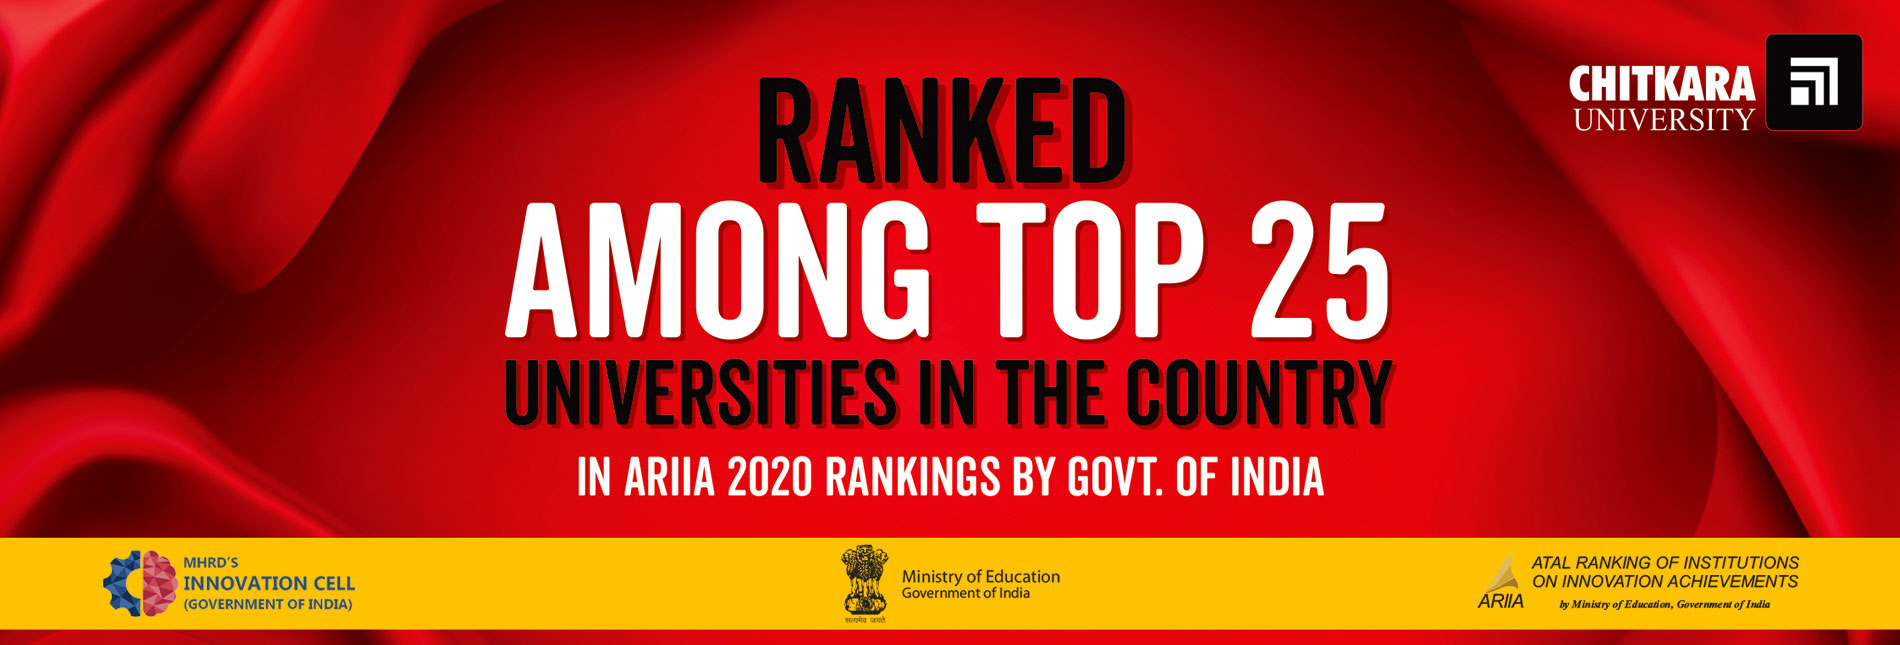 ARIIA 2020 Ranking by govt. of india